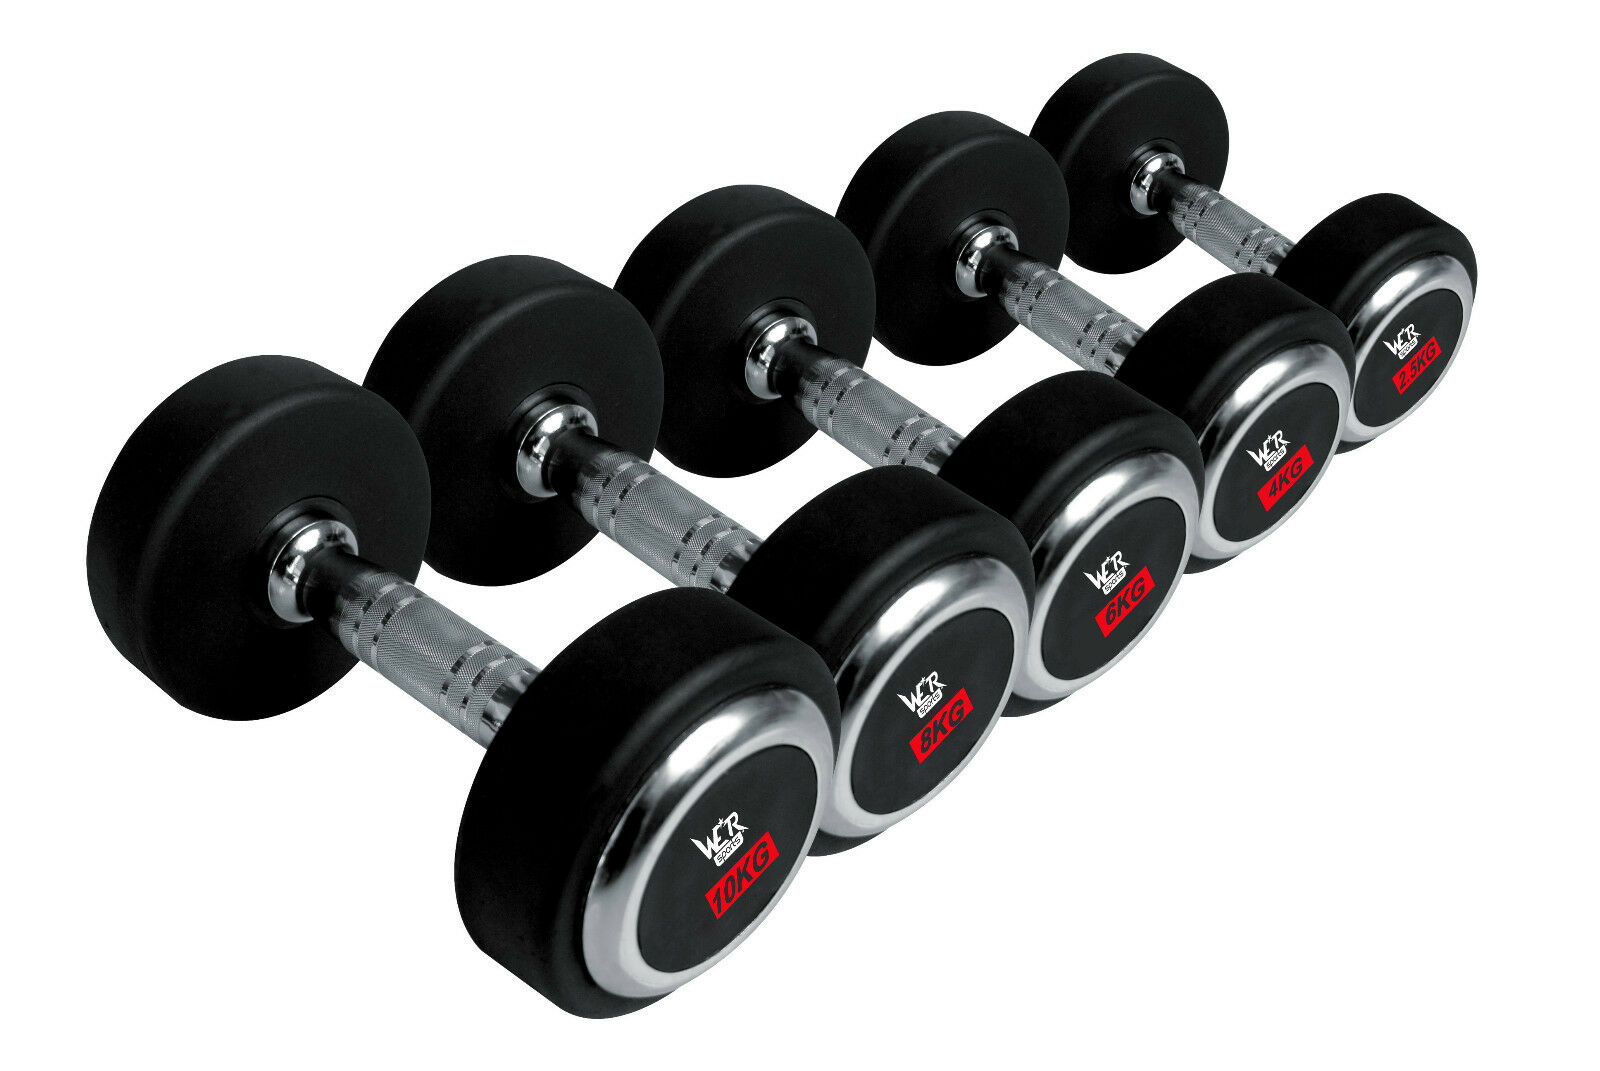 Rubber Dumbbells Encased Ergo Weights Sets Sets Weights Home Gym Fitness Weight Training c2f38c